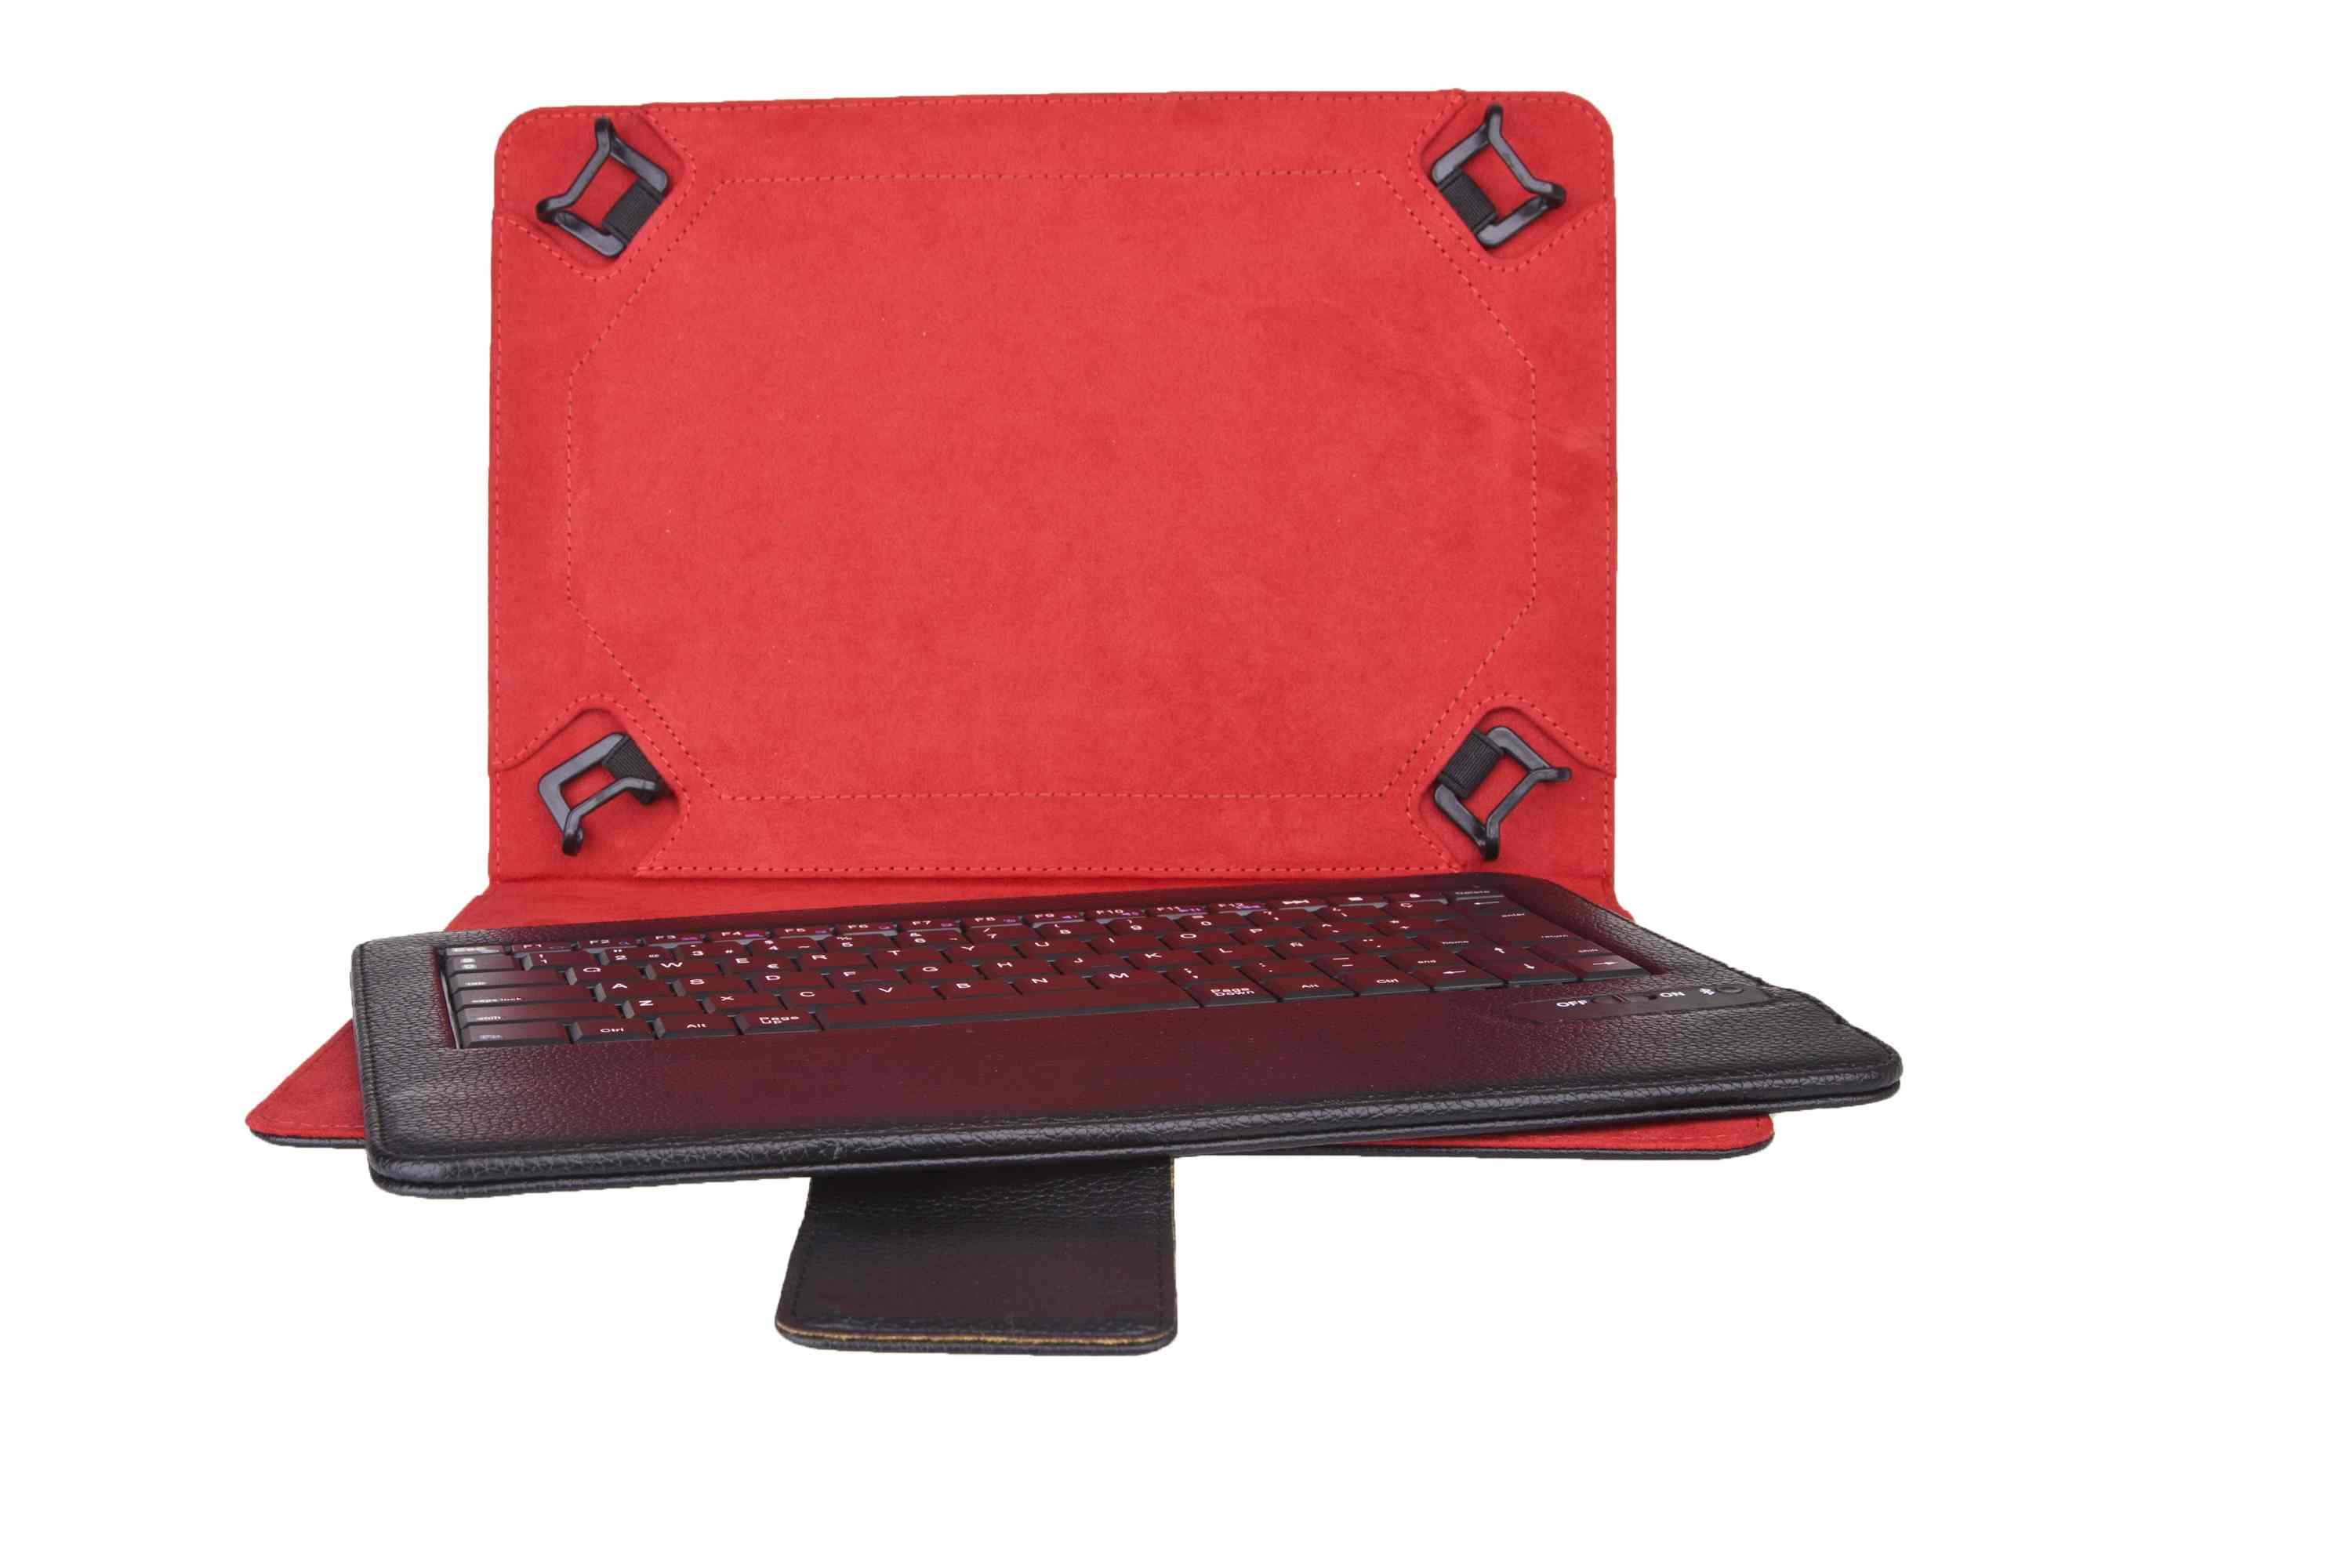 Funda Universal  Teclado Bluetooth Phoenix Para Tablet Ipad Ebook 7 8  Negra